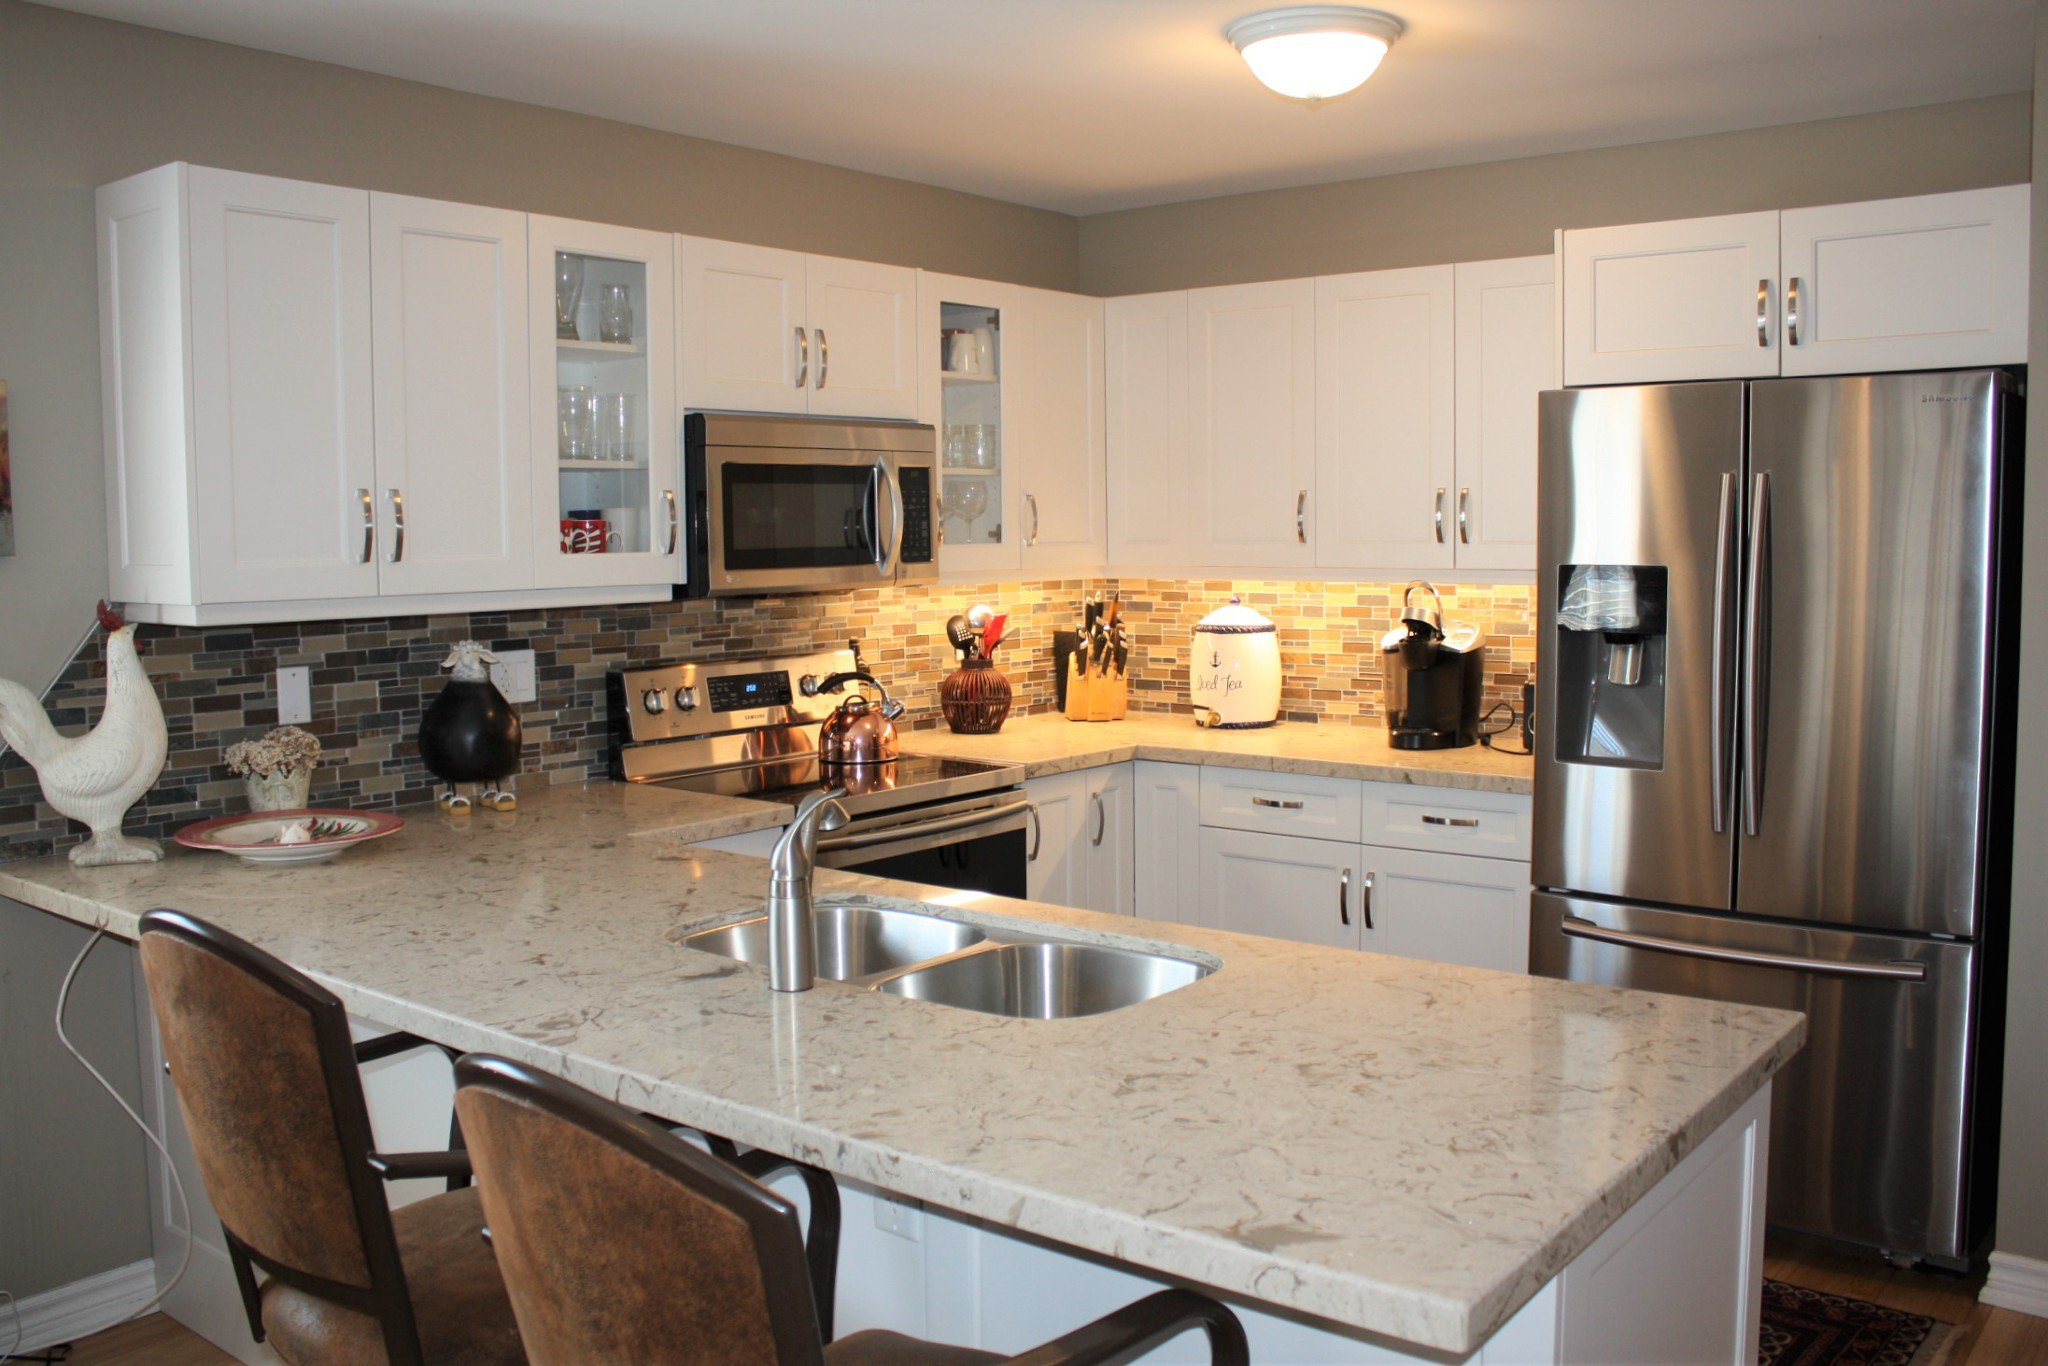 Photo 11: Photos: 706 Ontario Street in Cobourg: Residential Attached for sale : MLS®# 254262